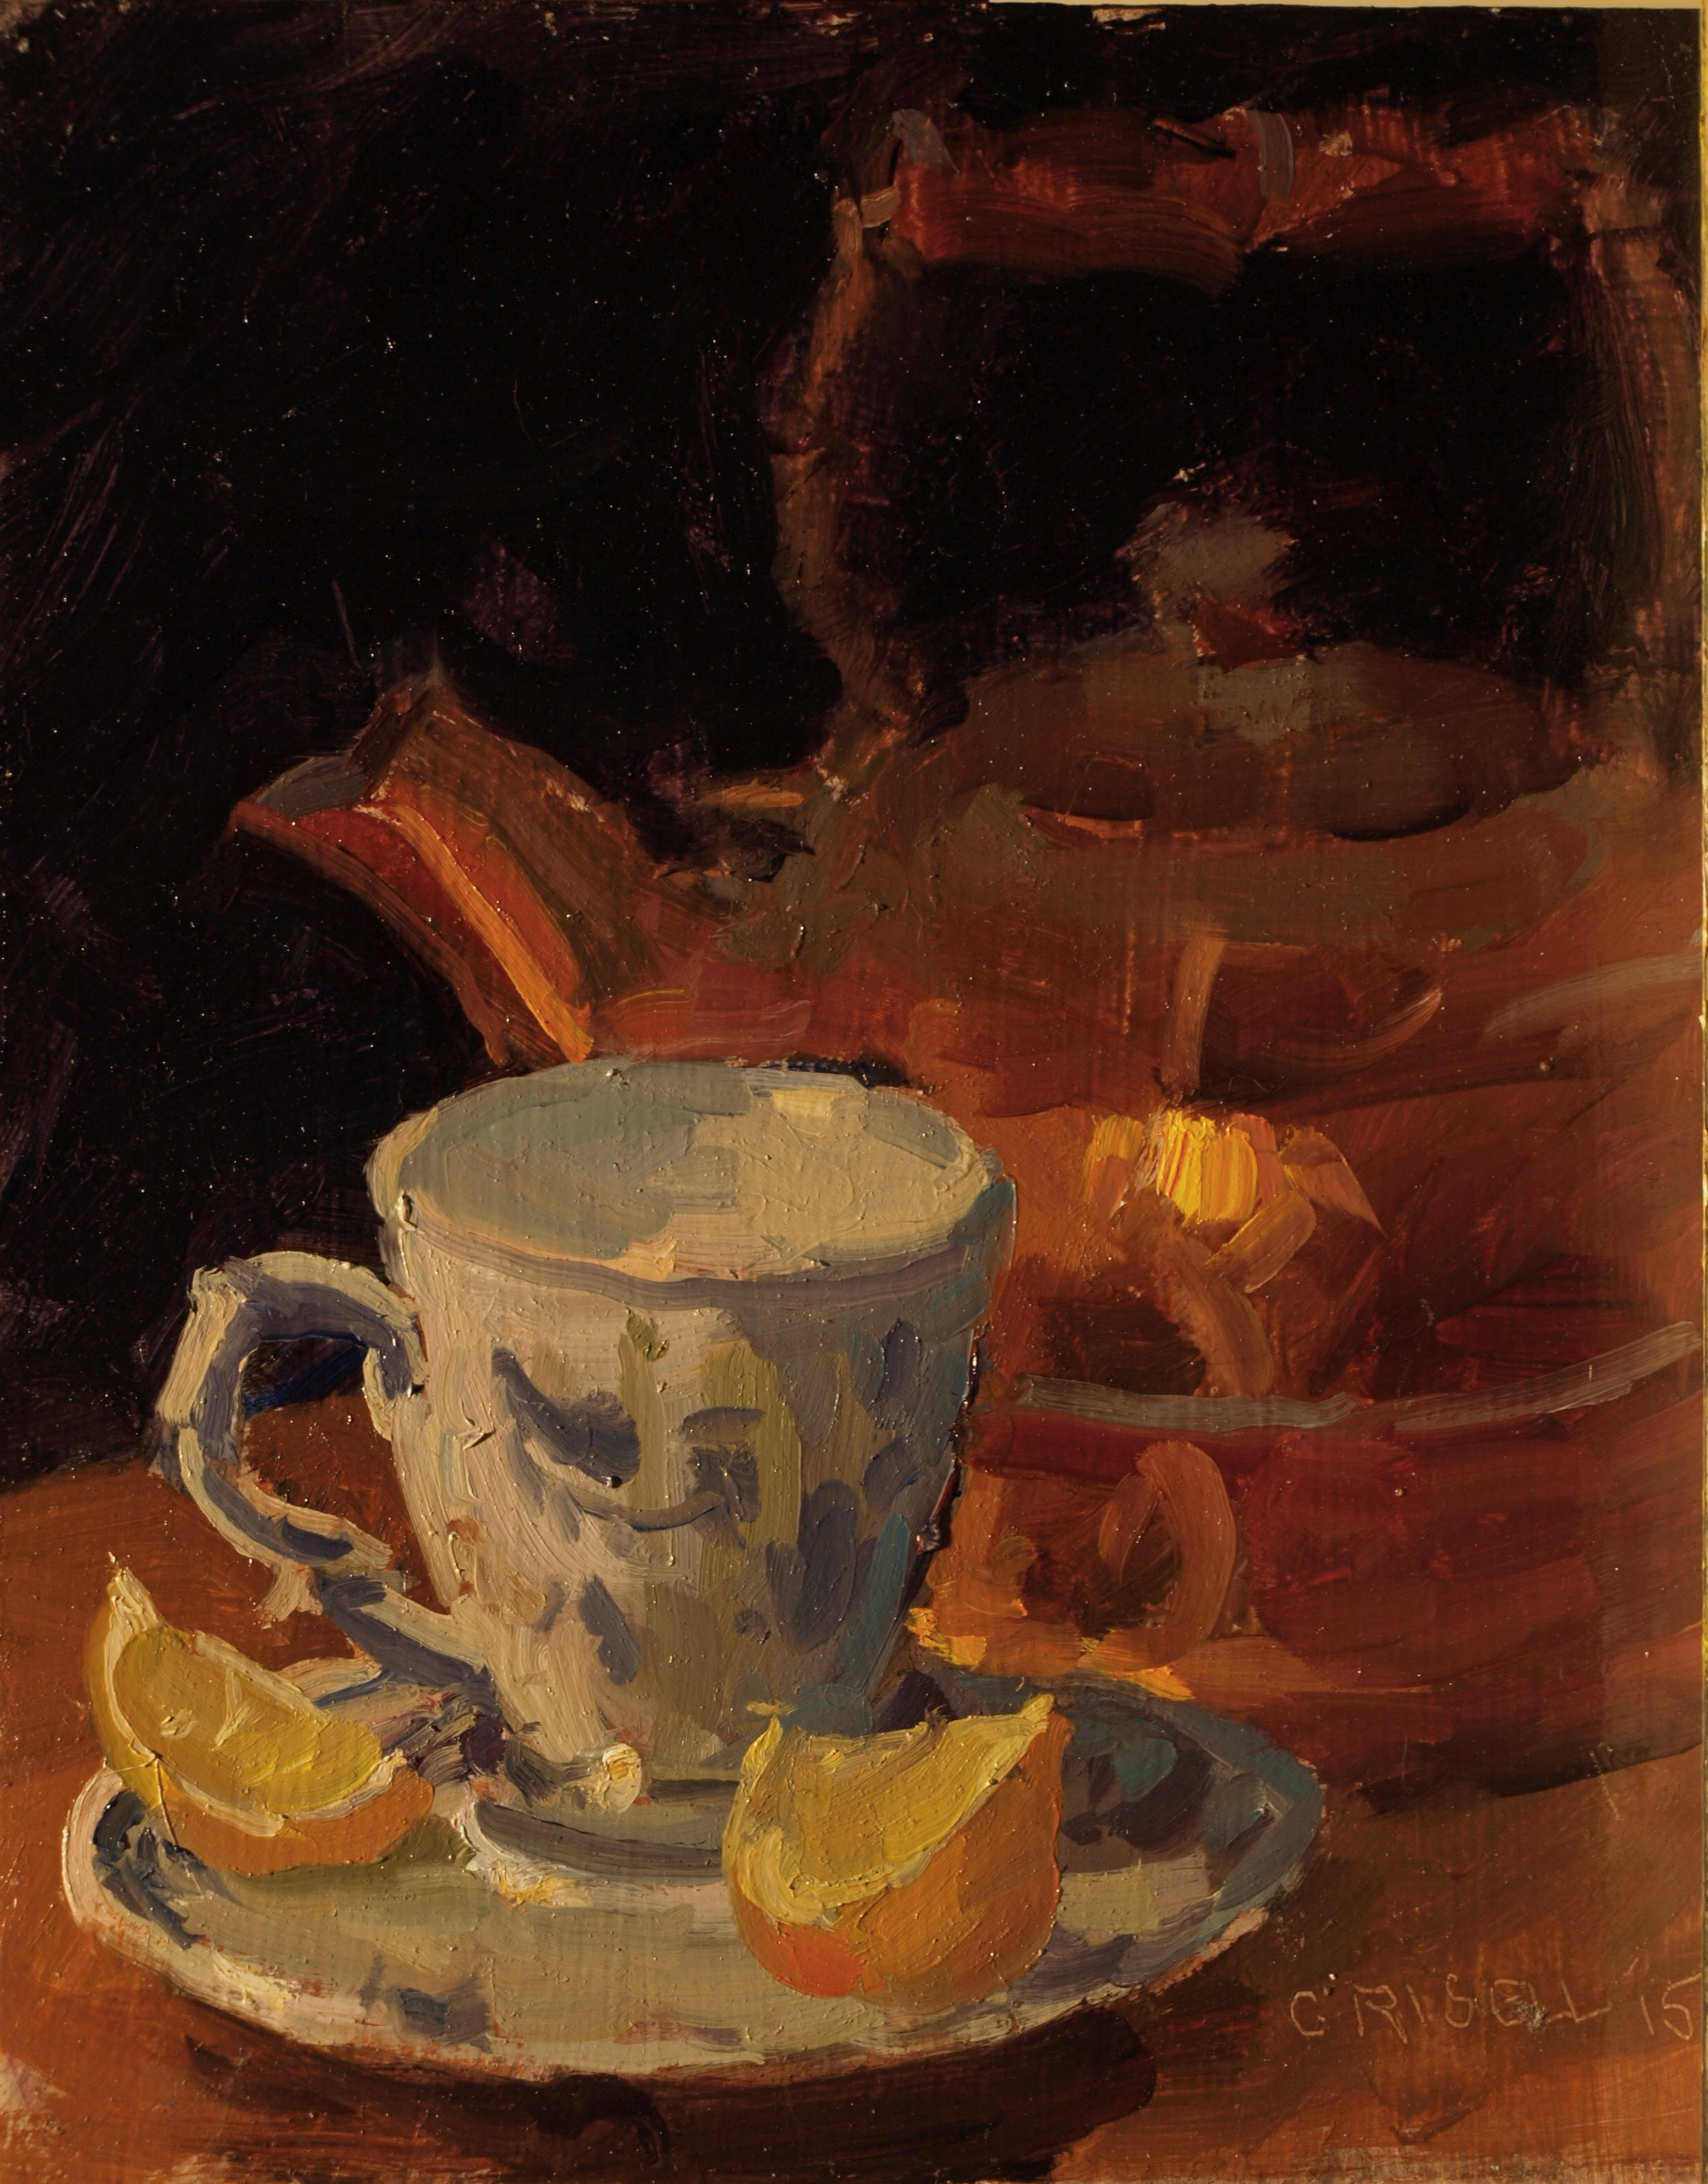 Cup and Copper Teapot, Oil on Panel, 10 x 8 Inches, by Susan Grisell, $200